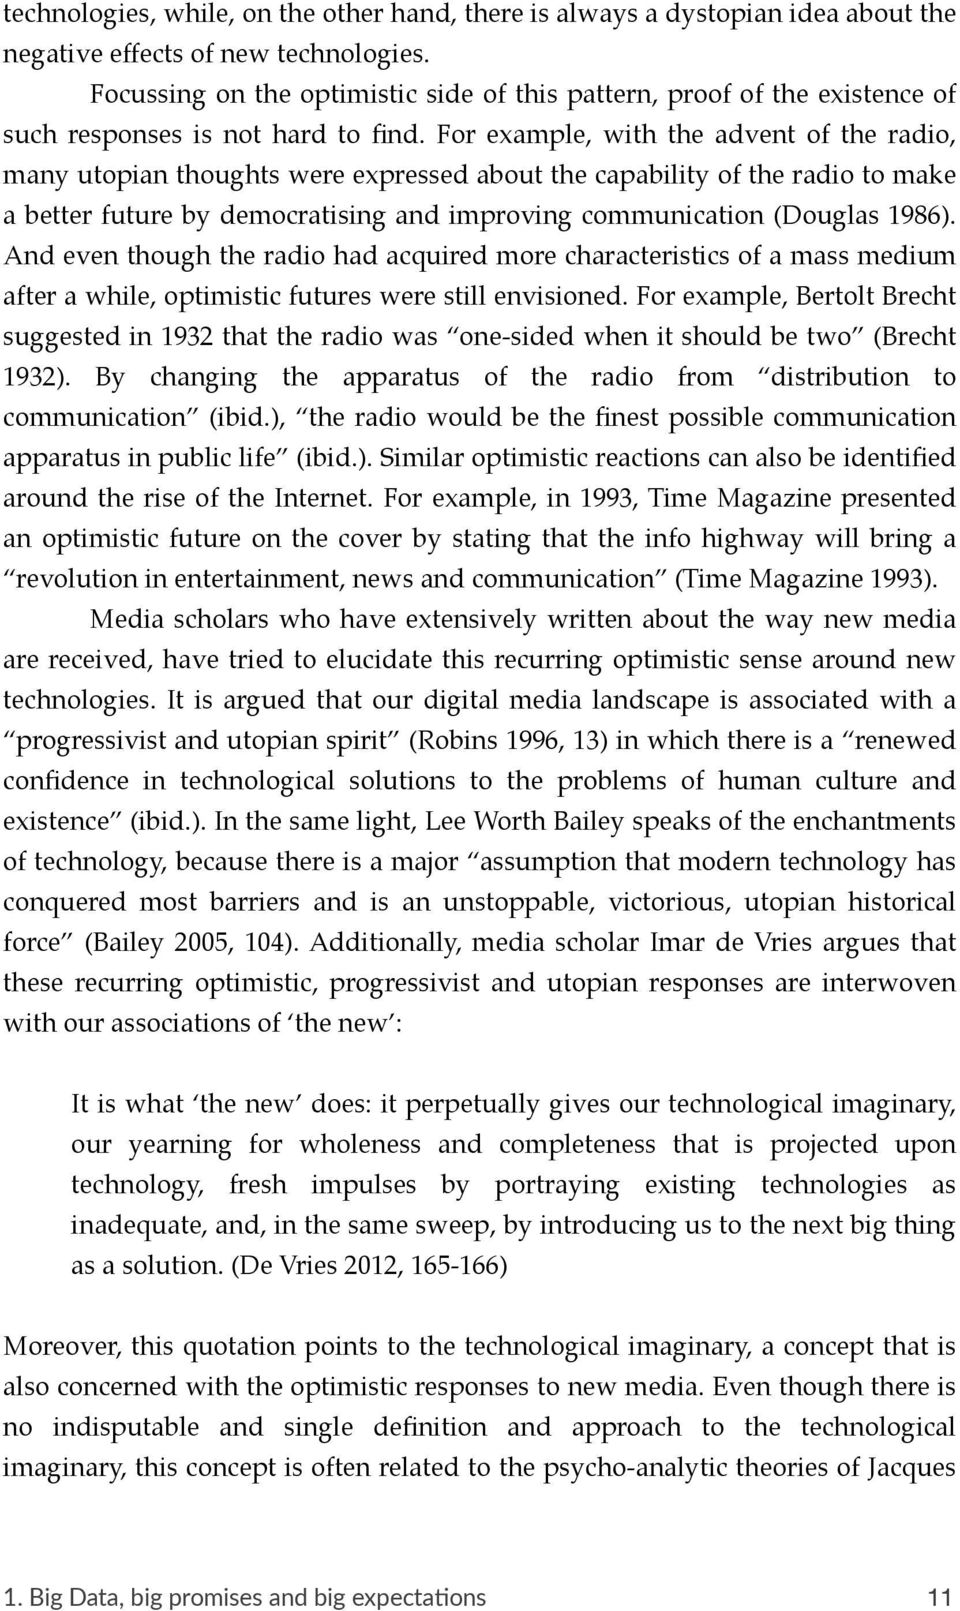 For example, with the advent of the radio, many utopian thoughts were expressed about the capability of the radio to make a better future by democratising and improving communication (Douglas 1986).